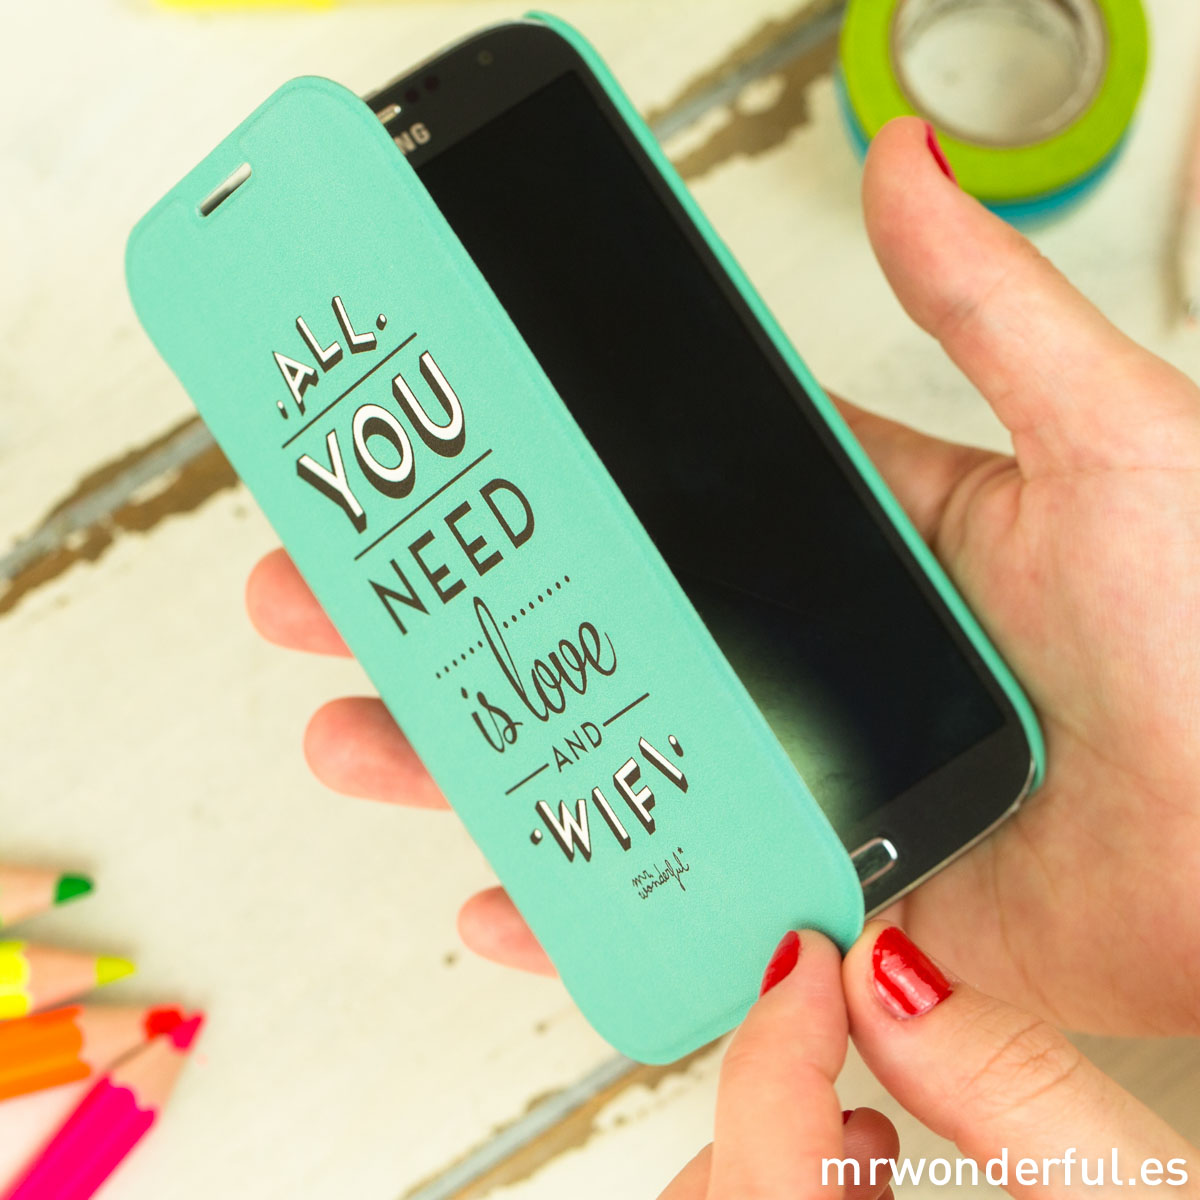 mrwonderful_MRFOL002_funda-mint-samsung-galaxy-S4_all-you-need-love-wifi-26